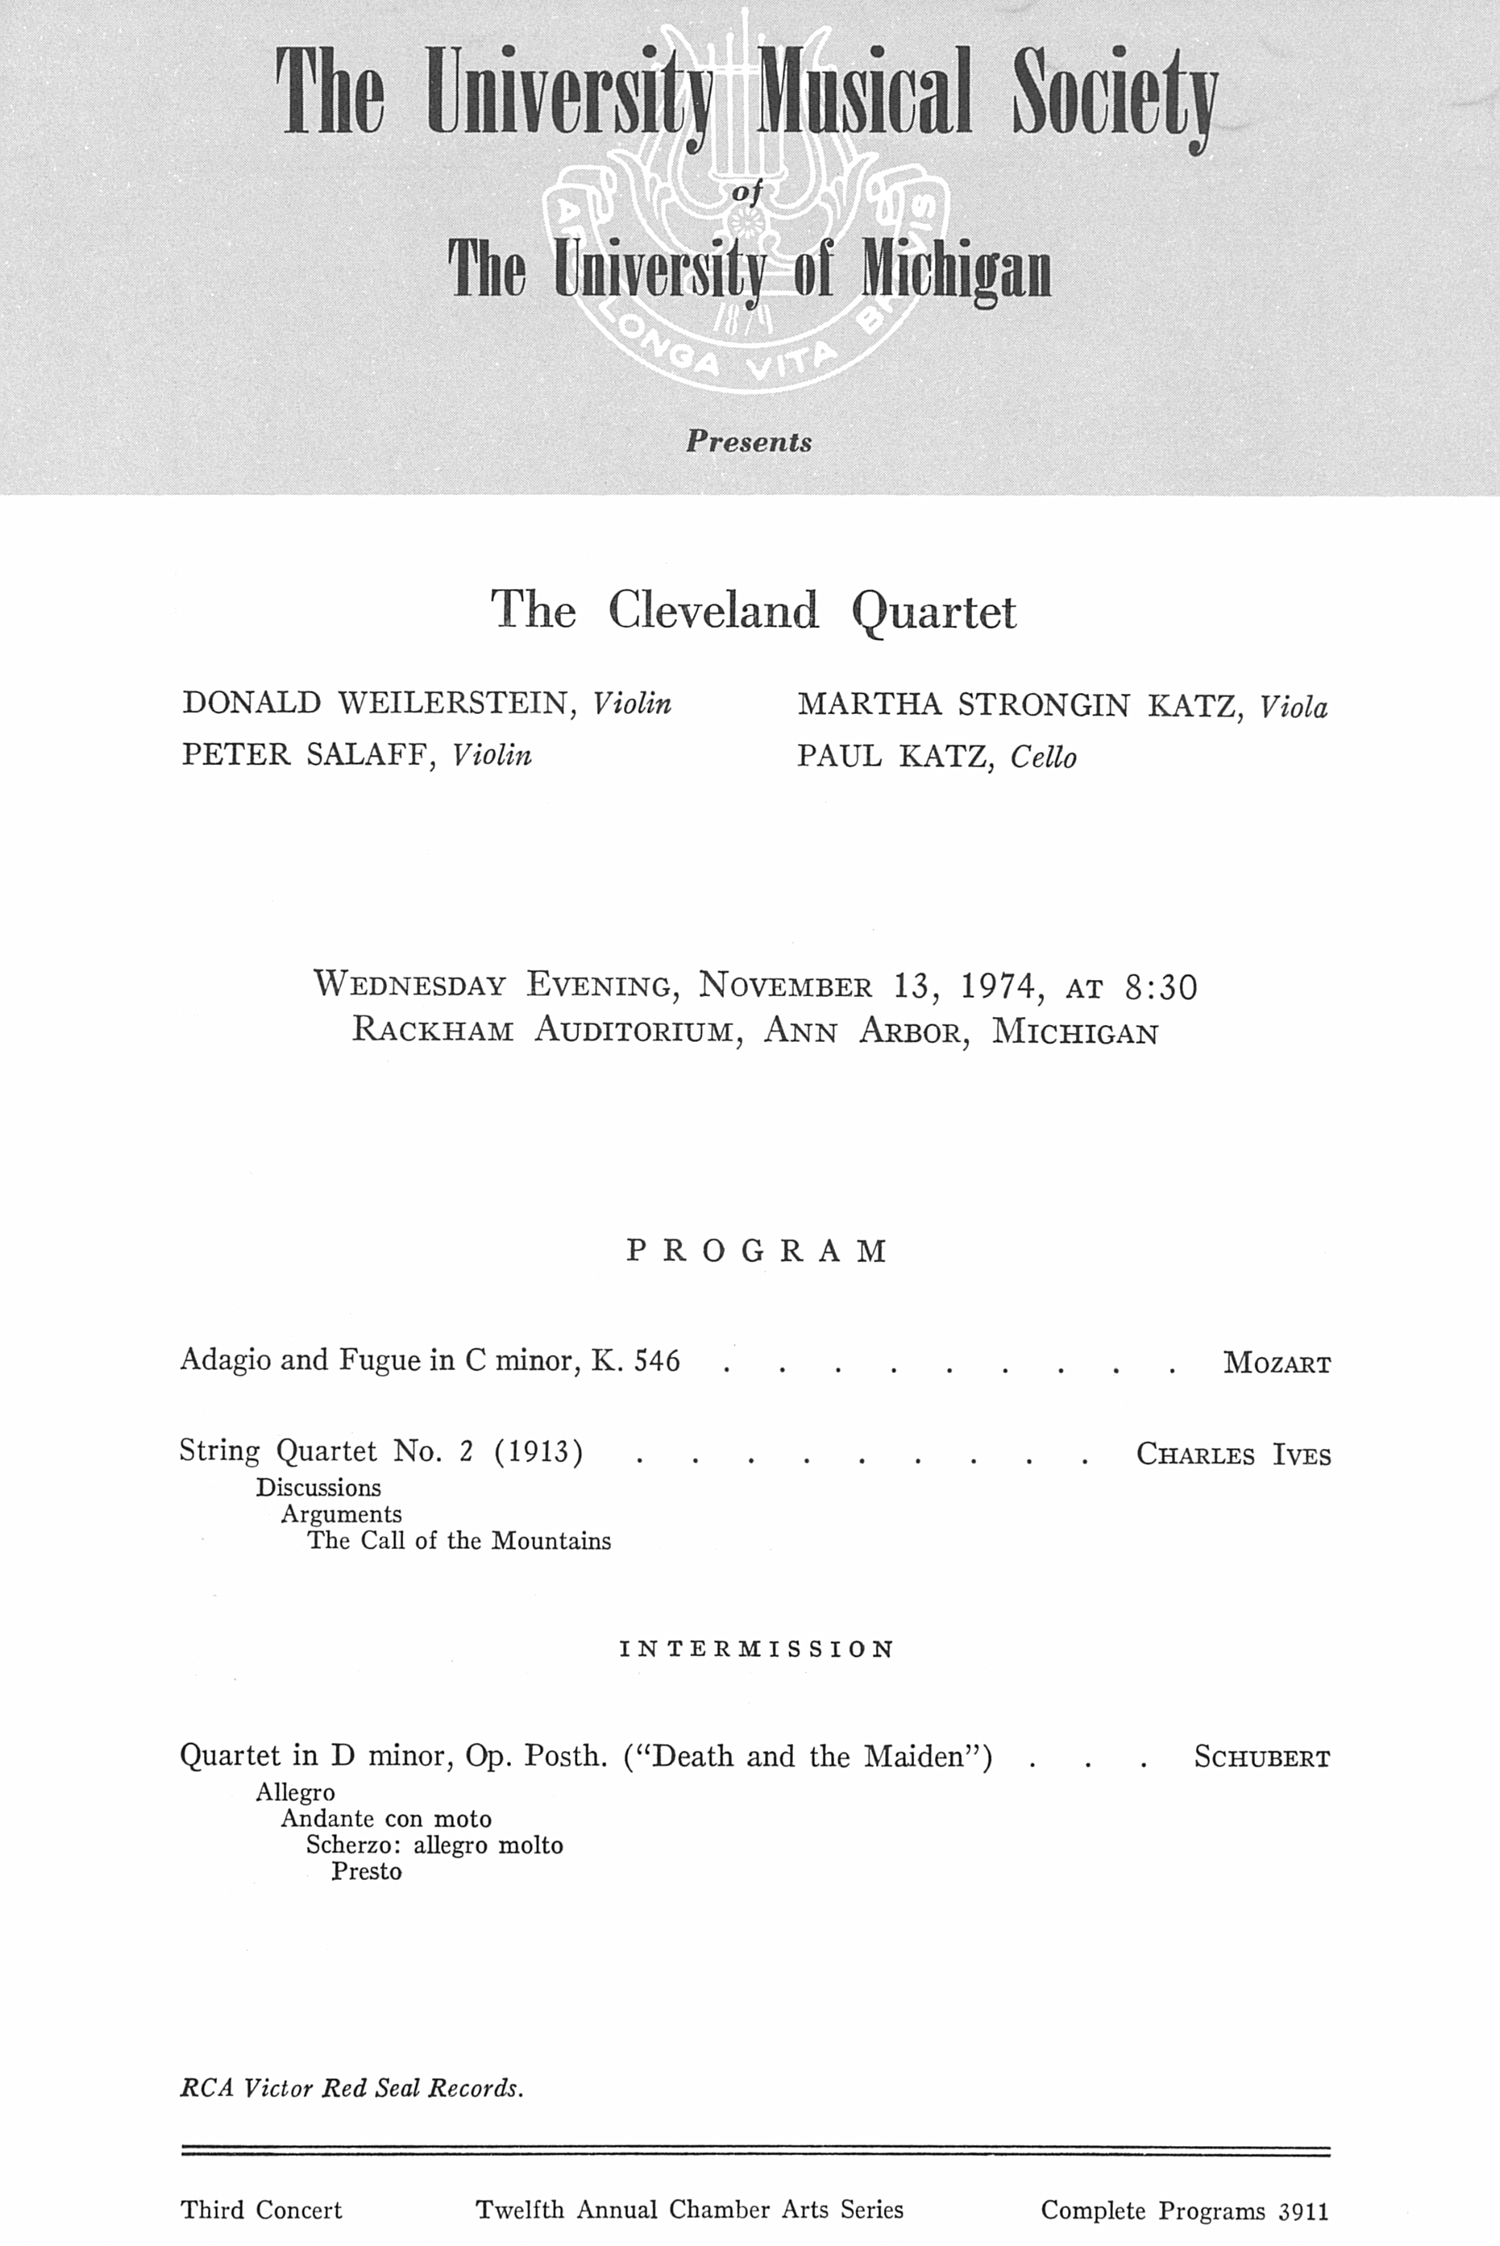 UMS Concert Program, November 13, 1974: The Cleveland Quartet --  image